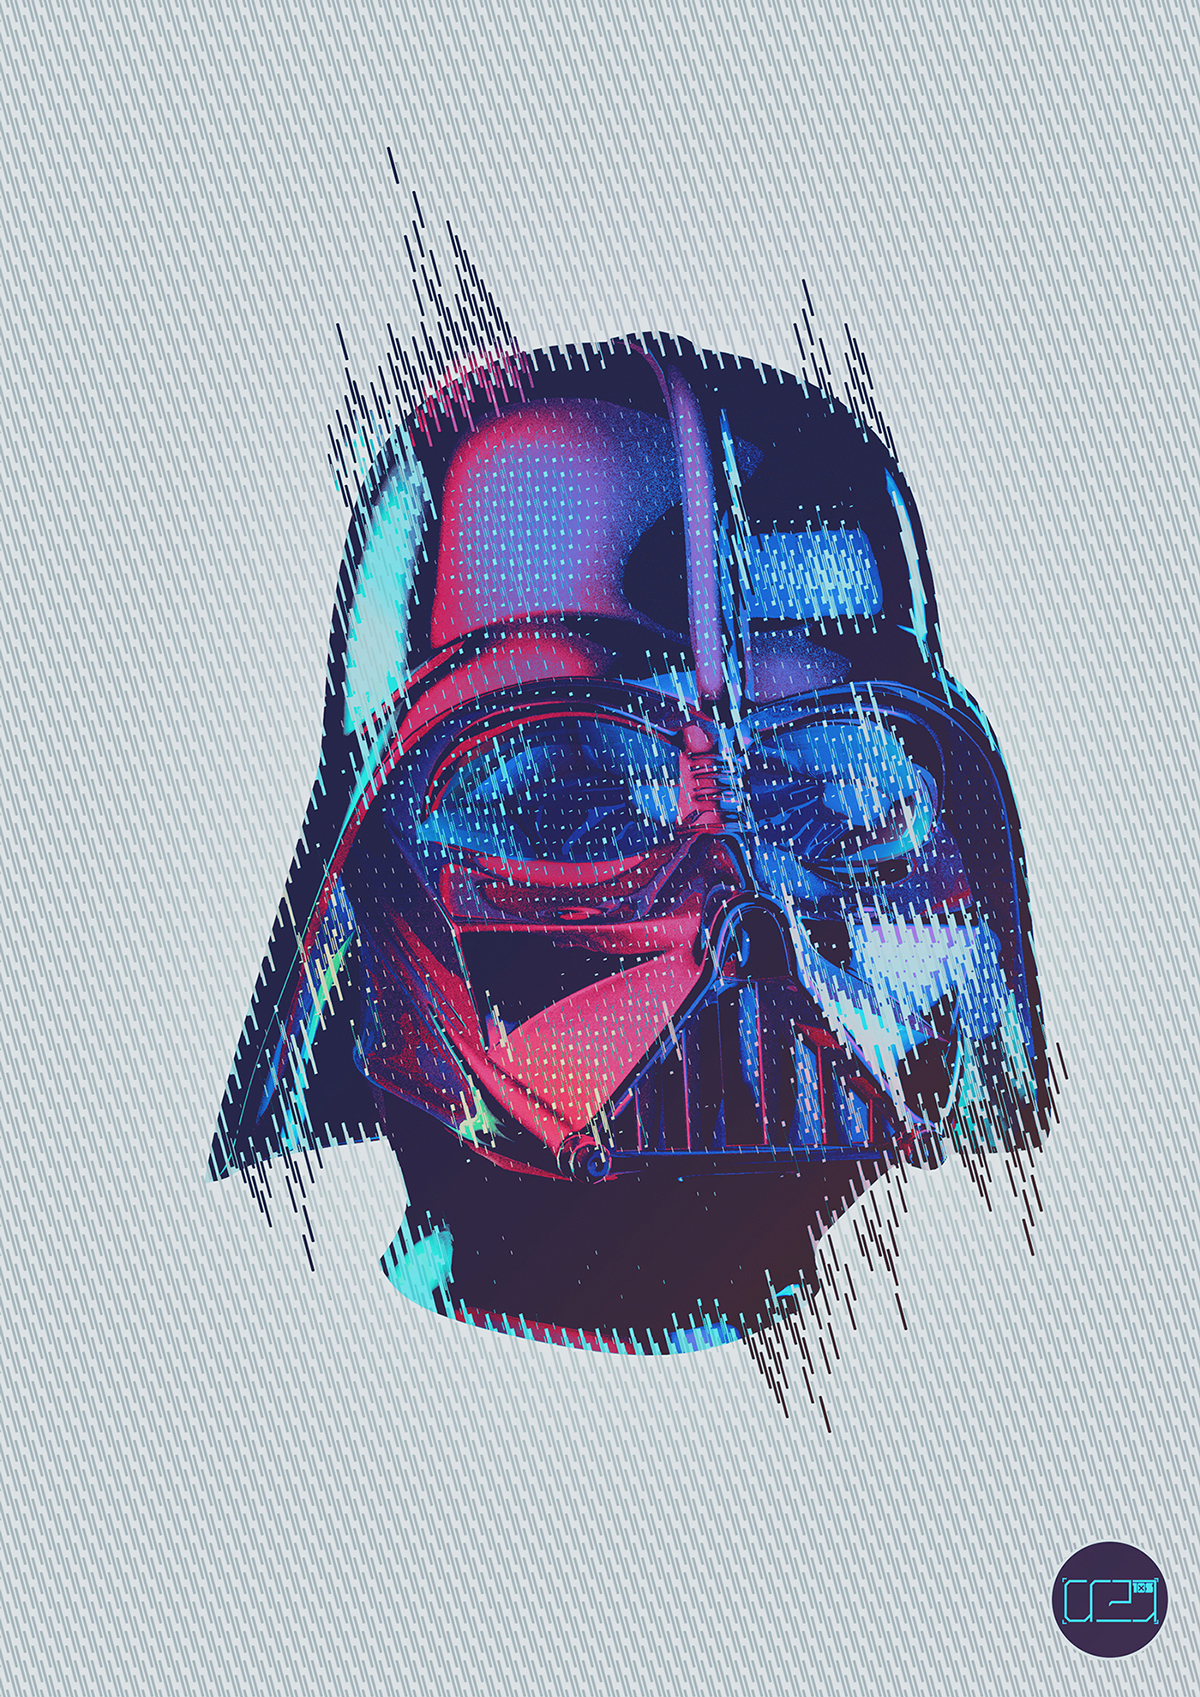 Star Wars Posters by Tony Ariawan